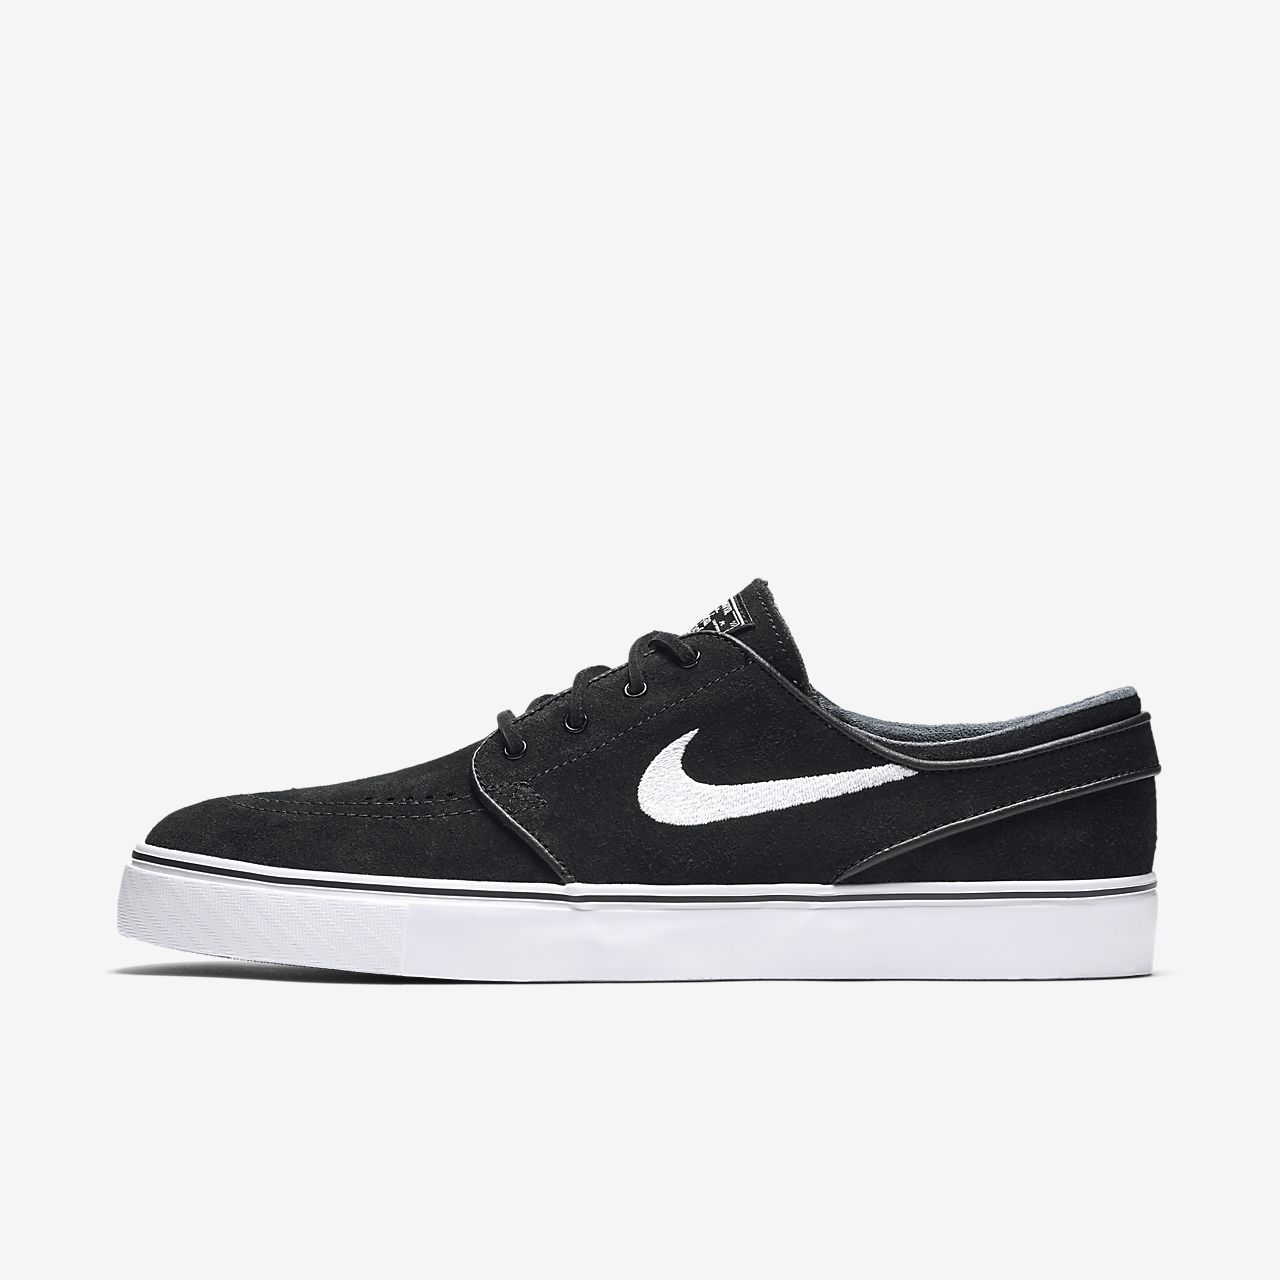 check out f3076 74d1b ... Nike SB Zoom Stefan Janoski OG Men s Skate Shoe